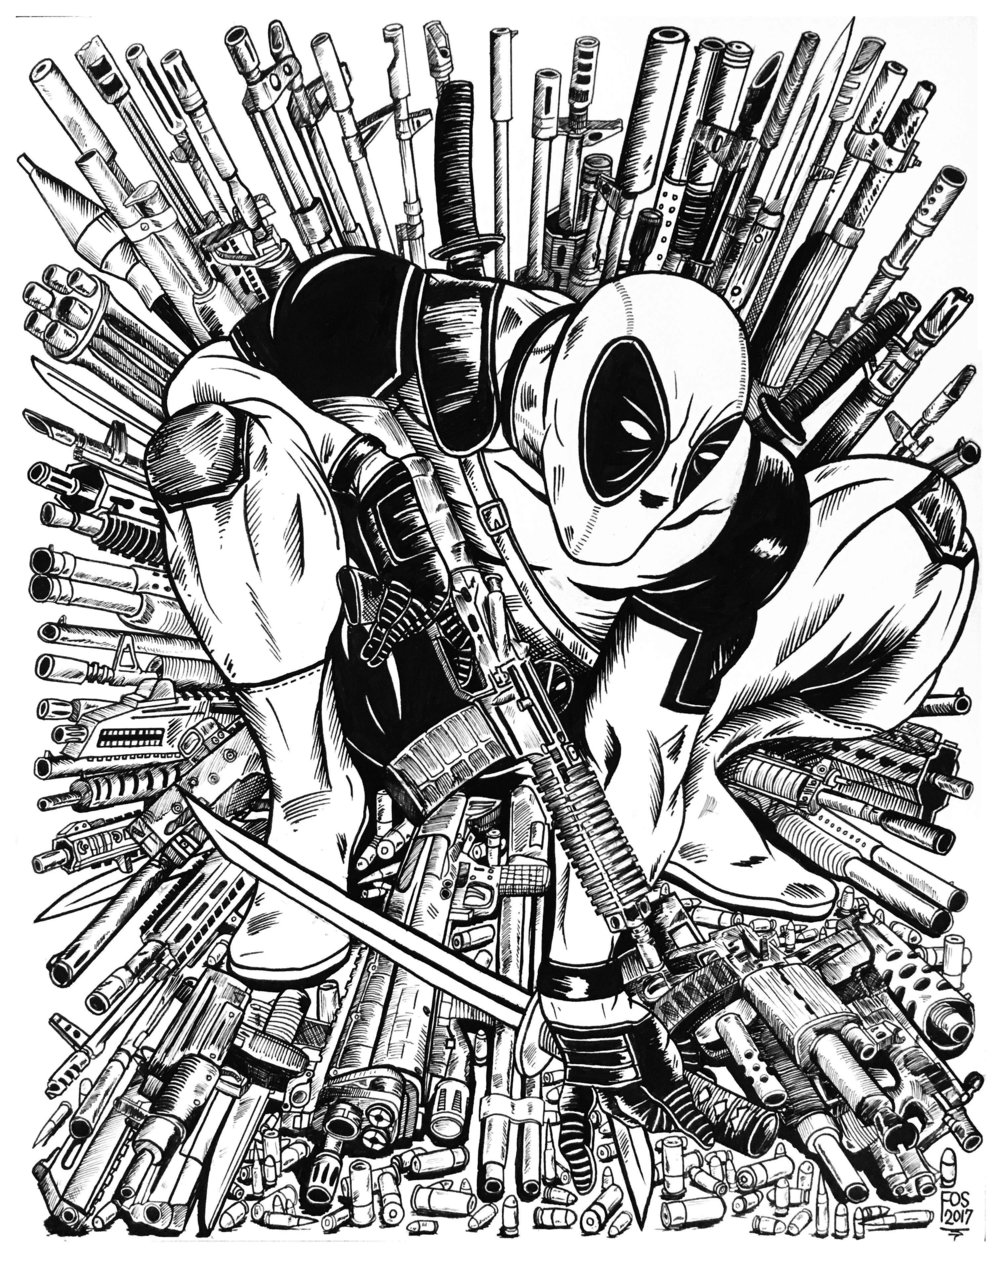 I grew up reading Marvel comics, and always wanted to see a mash up of Deadpool based on the Todd McFarlane Spiderman #1 cover. I took matters into my own hands and drew this one out myself.